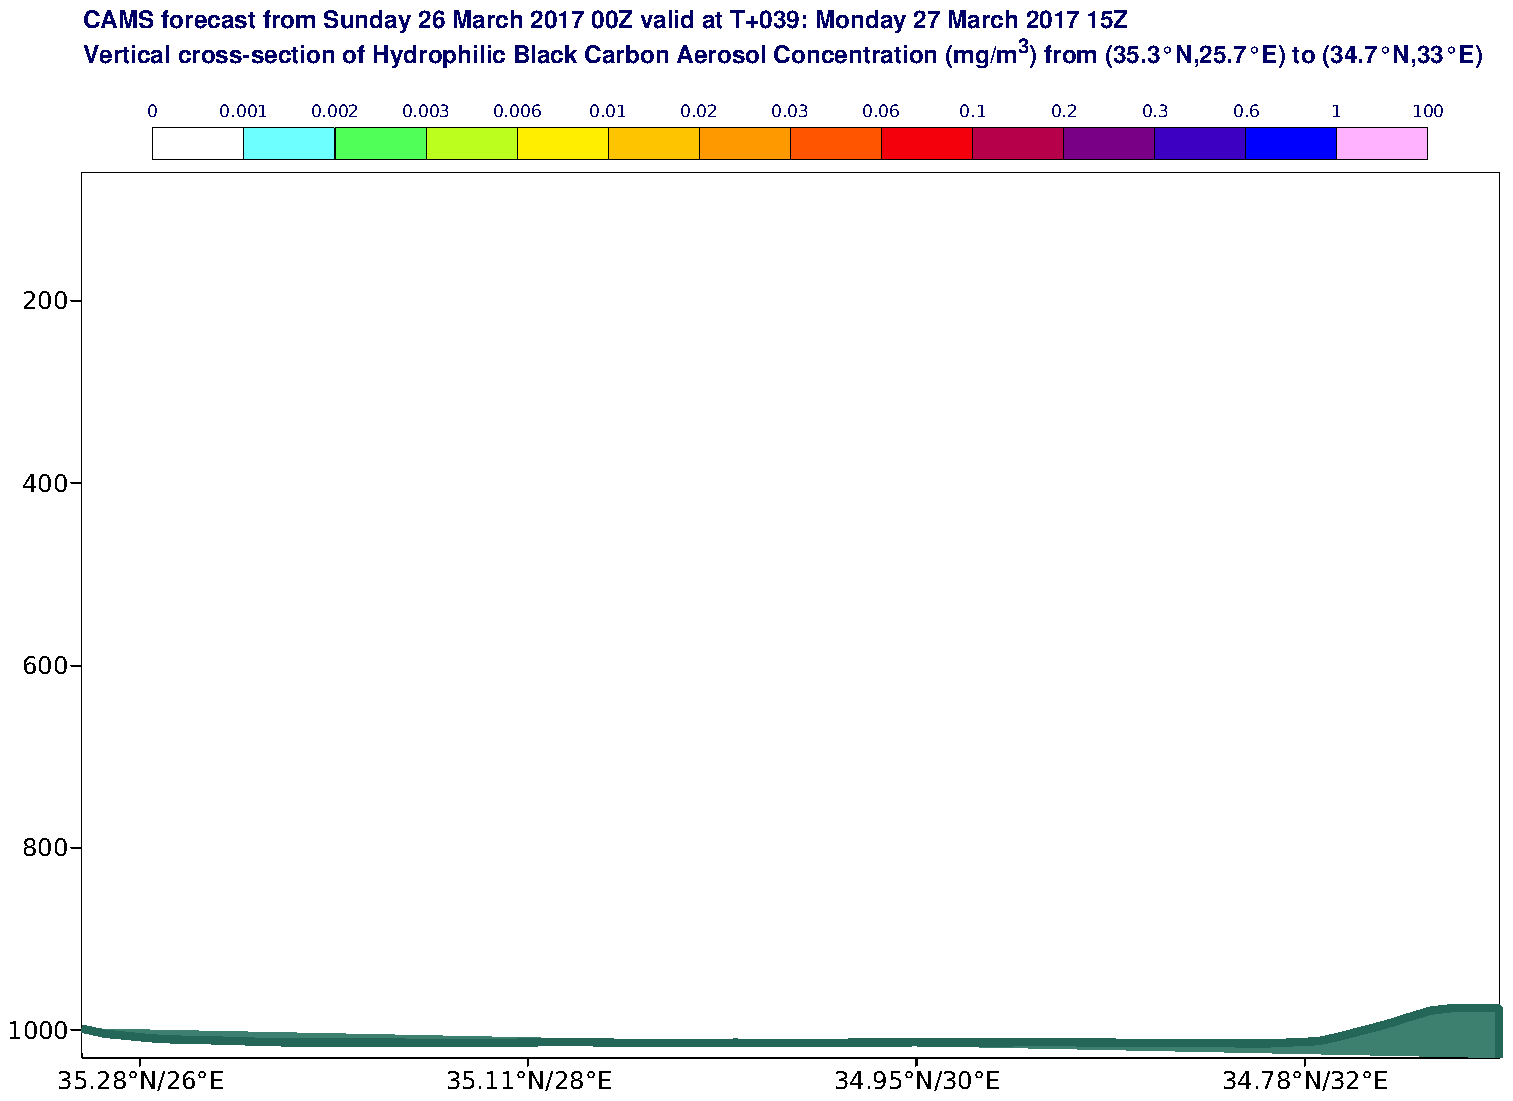 Vertical cross-section of Hydrophilic Black Carbon Aerosol Concentration (mg/m3) valid at T39 - 2017-03-27 15:00